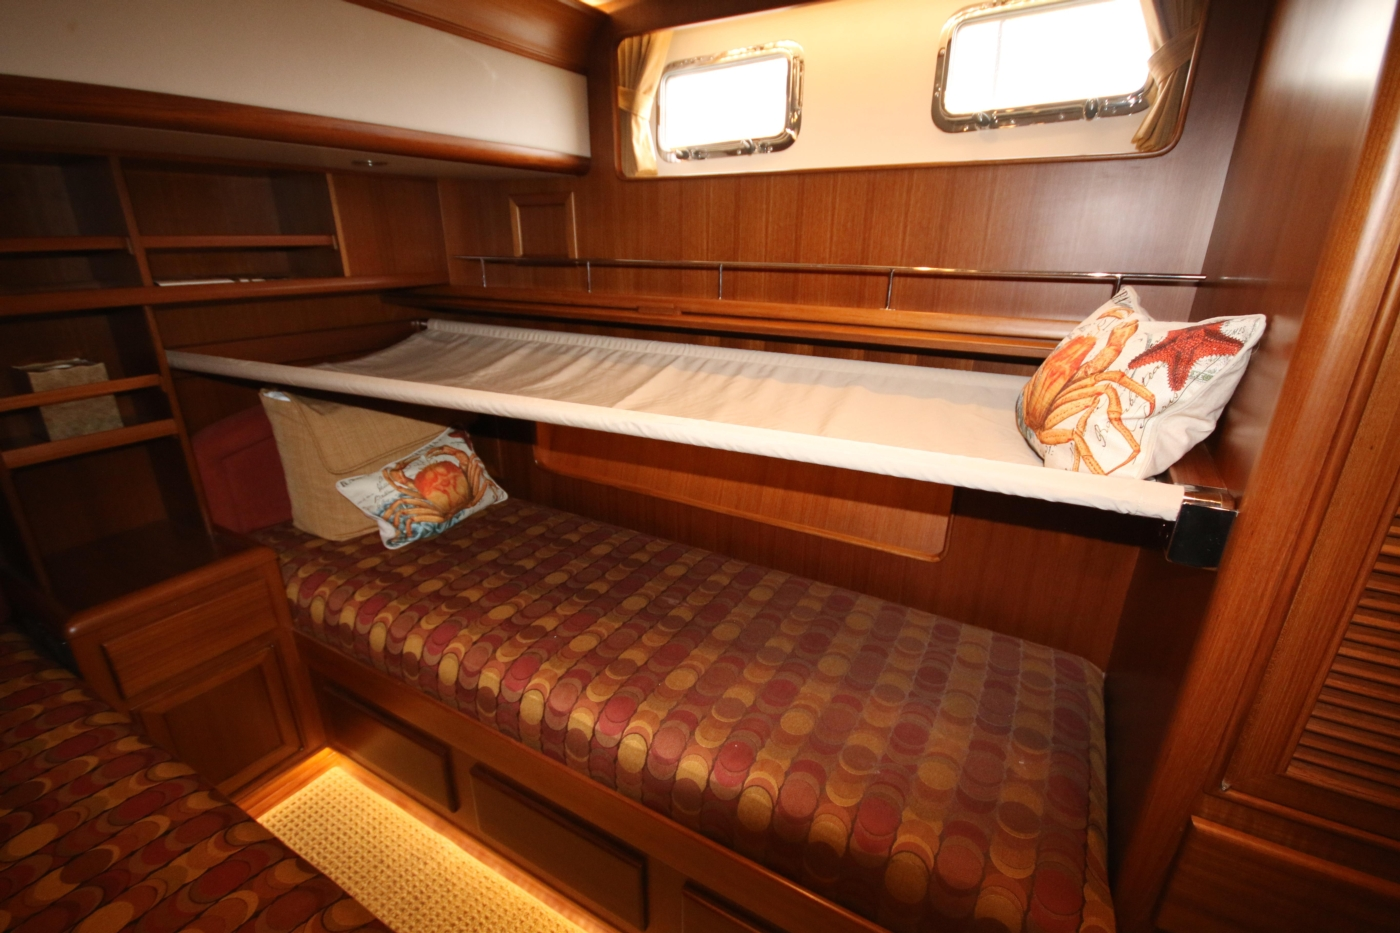 2015 Fleming 58 Pilothouse, Pull-out berth